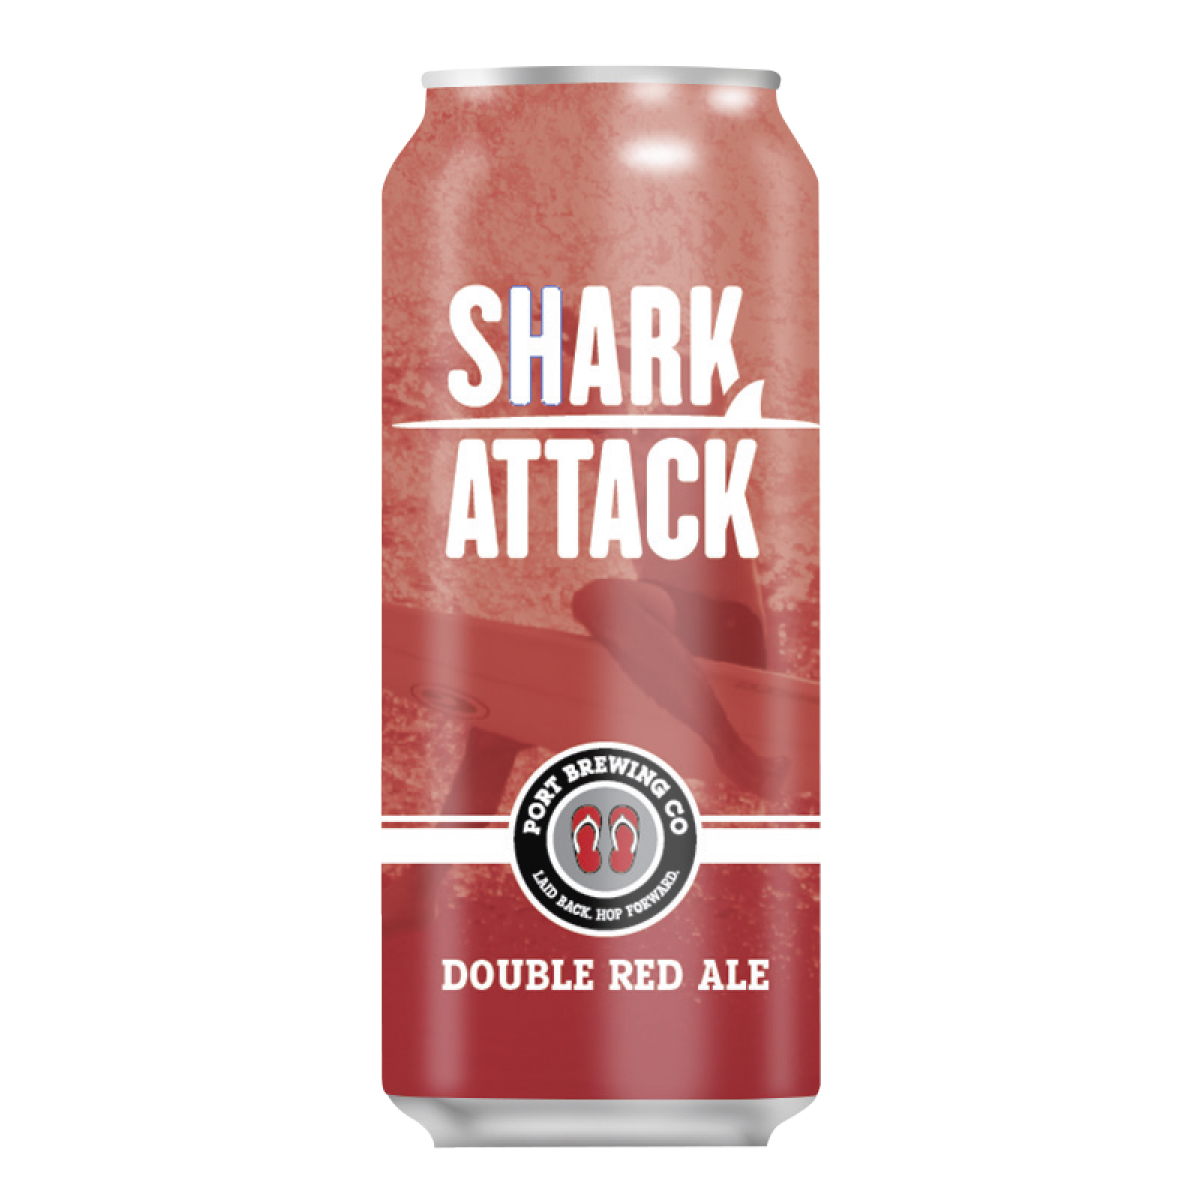 Shark Attack Double Red Ale - Four- Pack THUMBNAIL